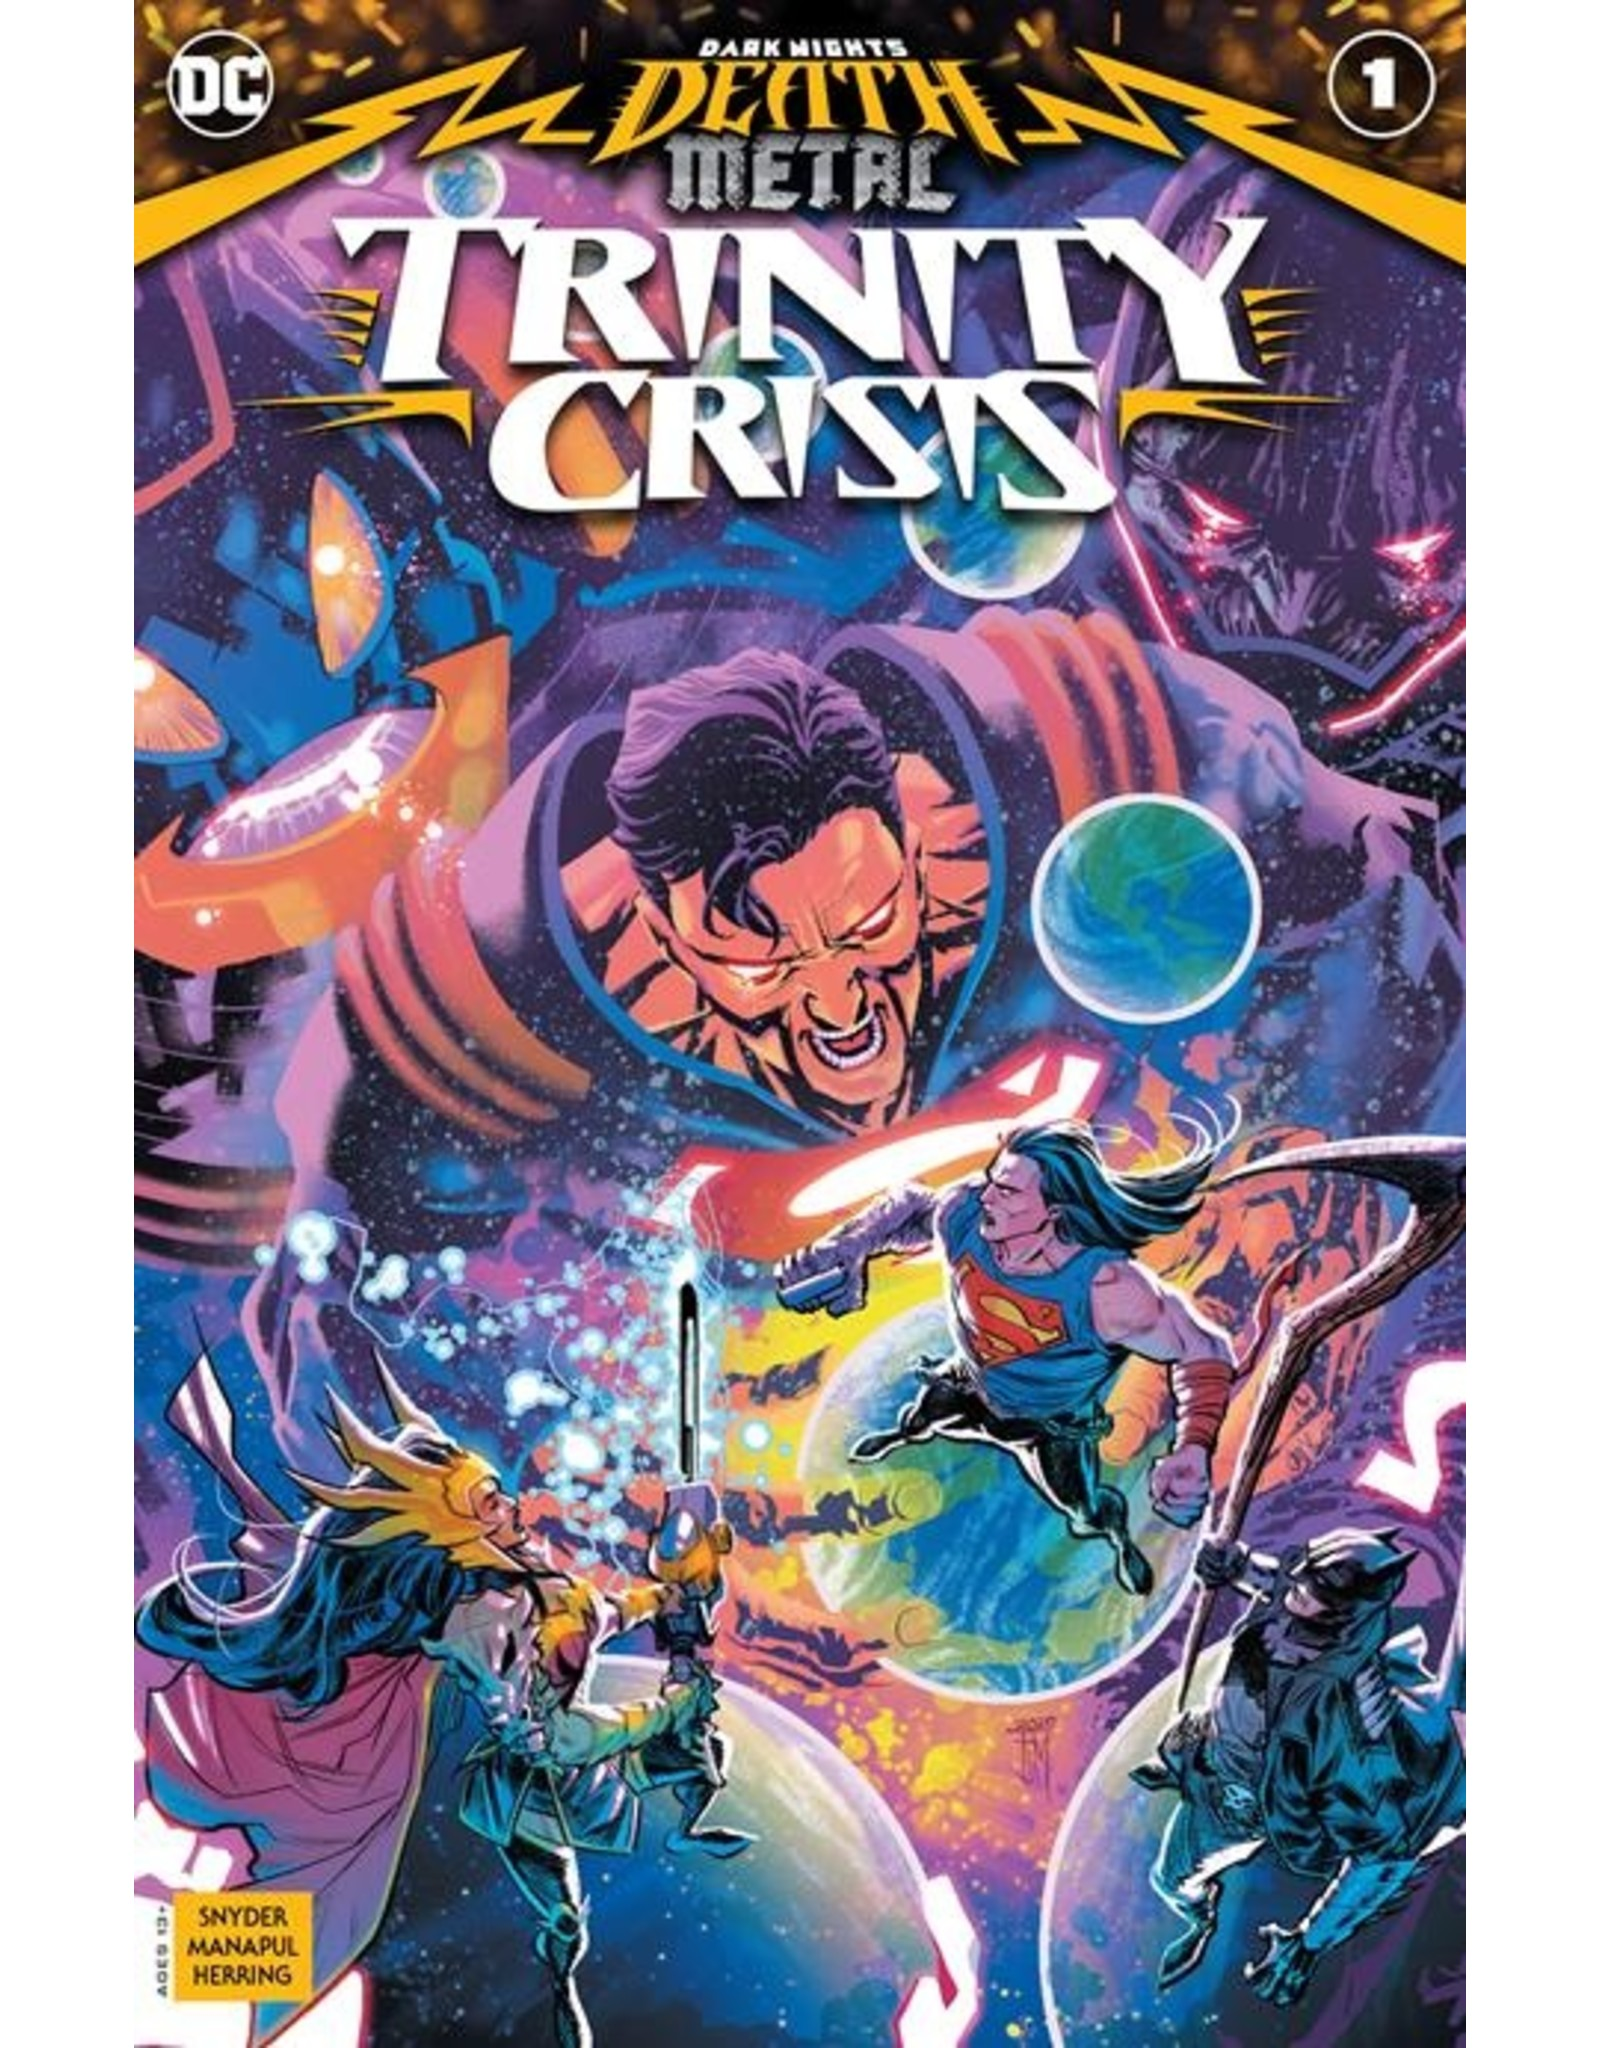 DC COMICS DARK NIGHTS DEATH METAL TRINITY CRISIS #1 (ONE SHOT) CVR A FRANCIS MANAPUL